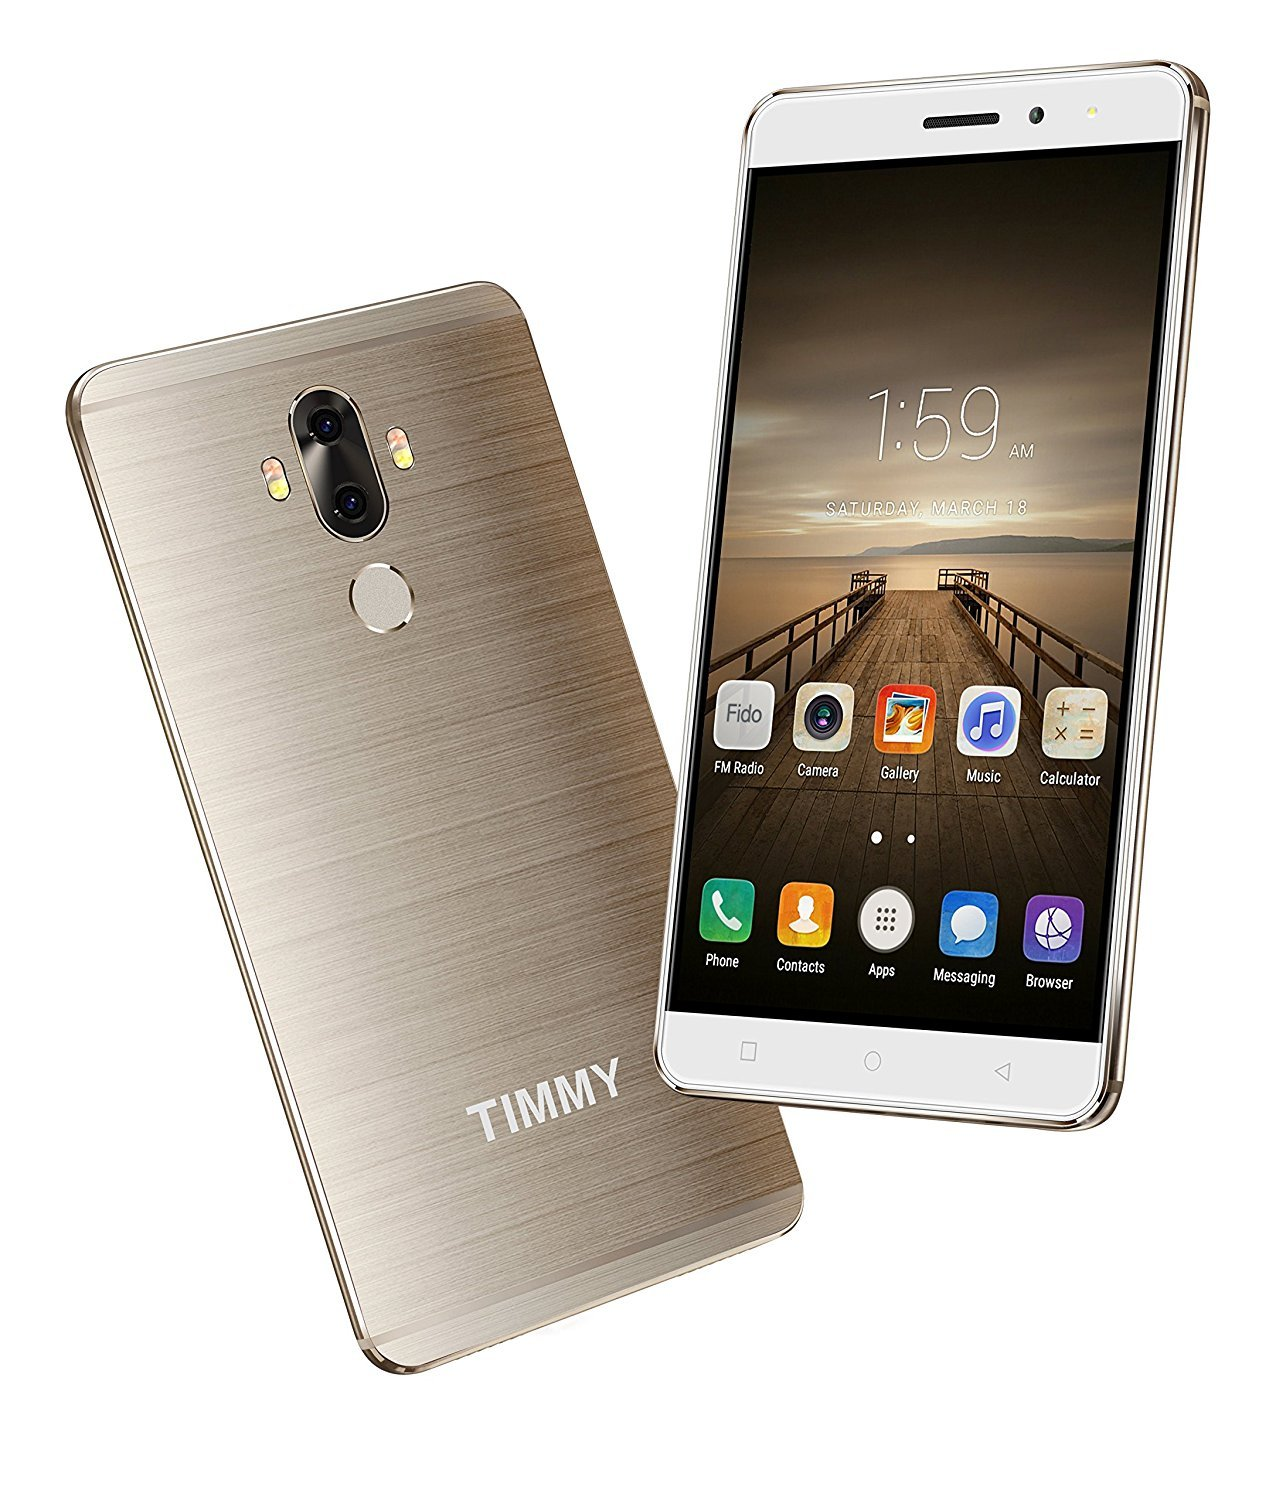 6.0'' Unlocked Smartphones,4G FDD-LTE,2GB/16GB,Dual Sim Quad Core Android 7.0 Cell Phone Gold by TIMMY by Timmy